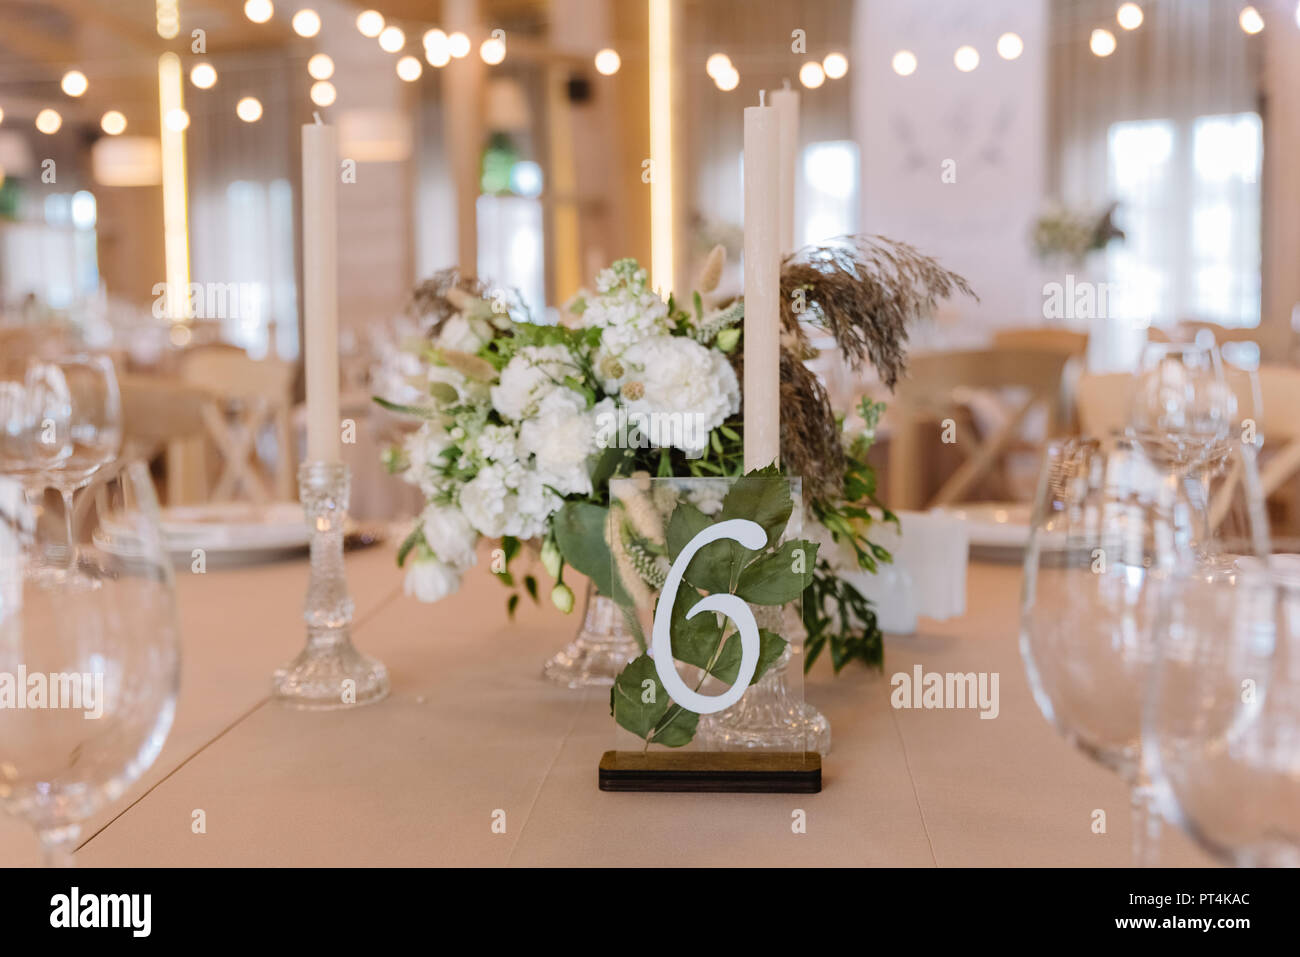 Decoration of a table for guests at a wedding in beautiful, gentle flowers - Stock Image